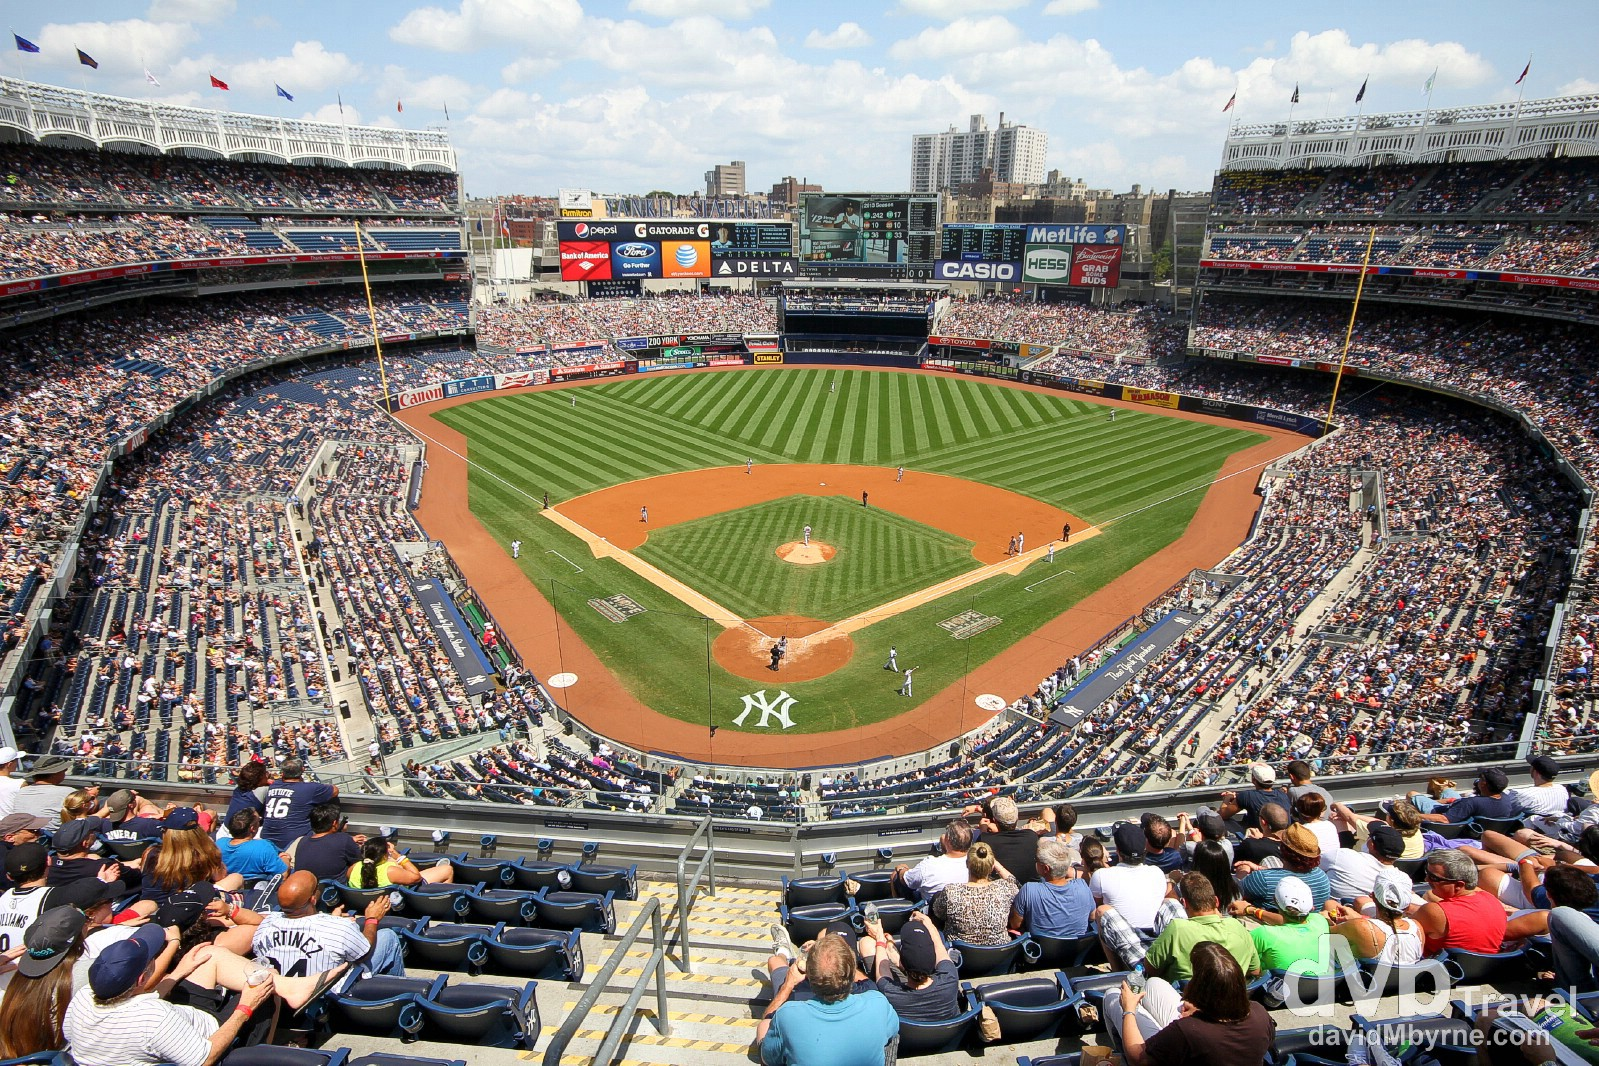 A sunny Sunday afternoon in Yankee Stadium, The Bronx, New York. July 14th 2013.